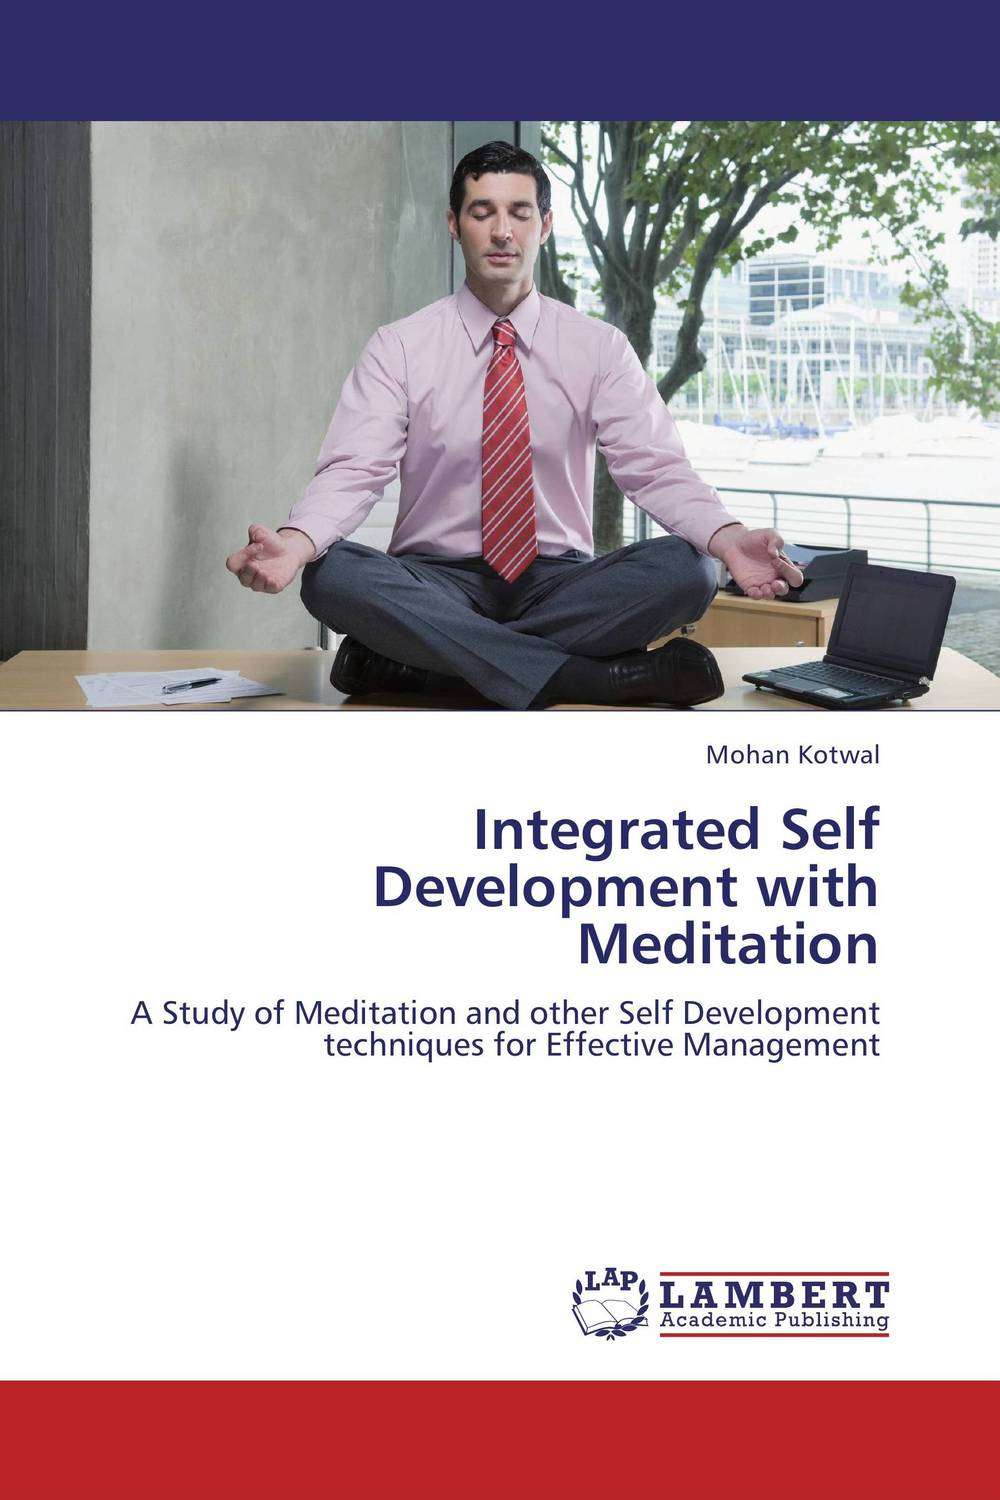 Integrated Self Development with Meditation robert benfari c understanding and changing your management style assessments and tools for self development